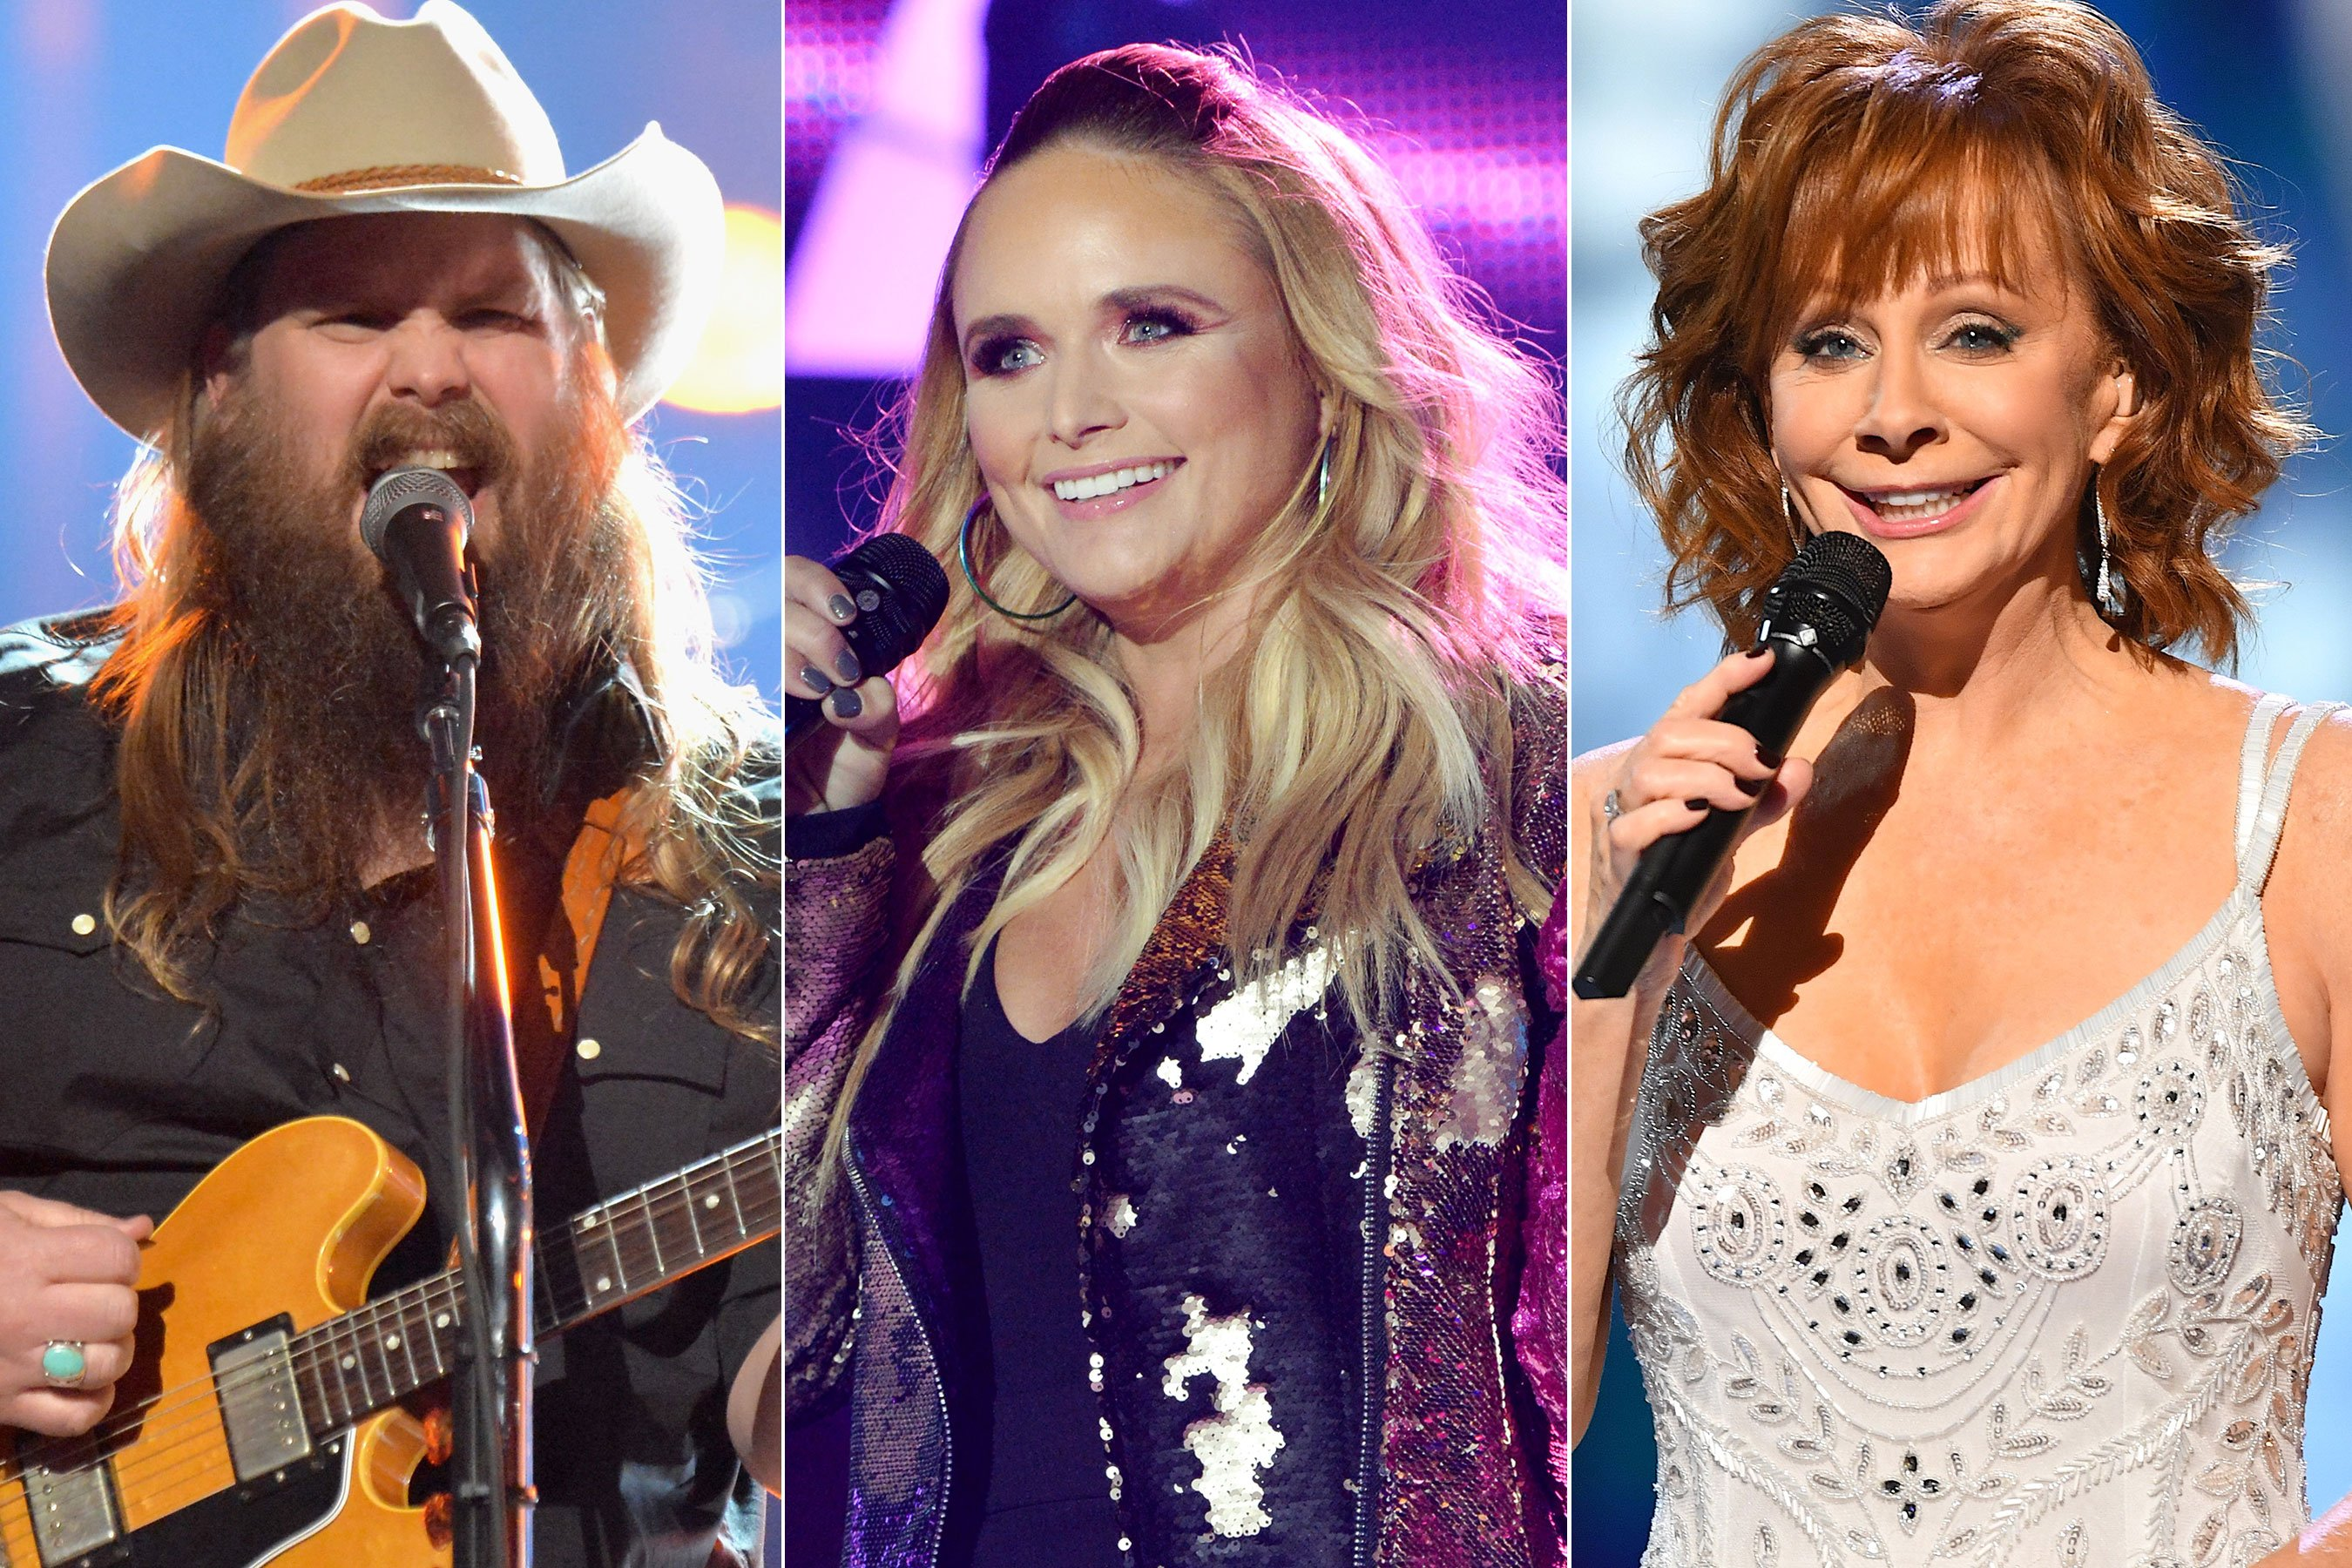 ACM Awards 2018: See full list of nominees, Reba McEntire to host